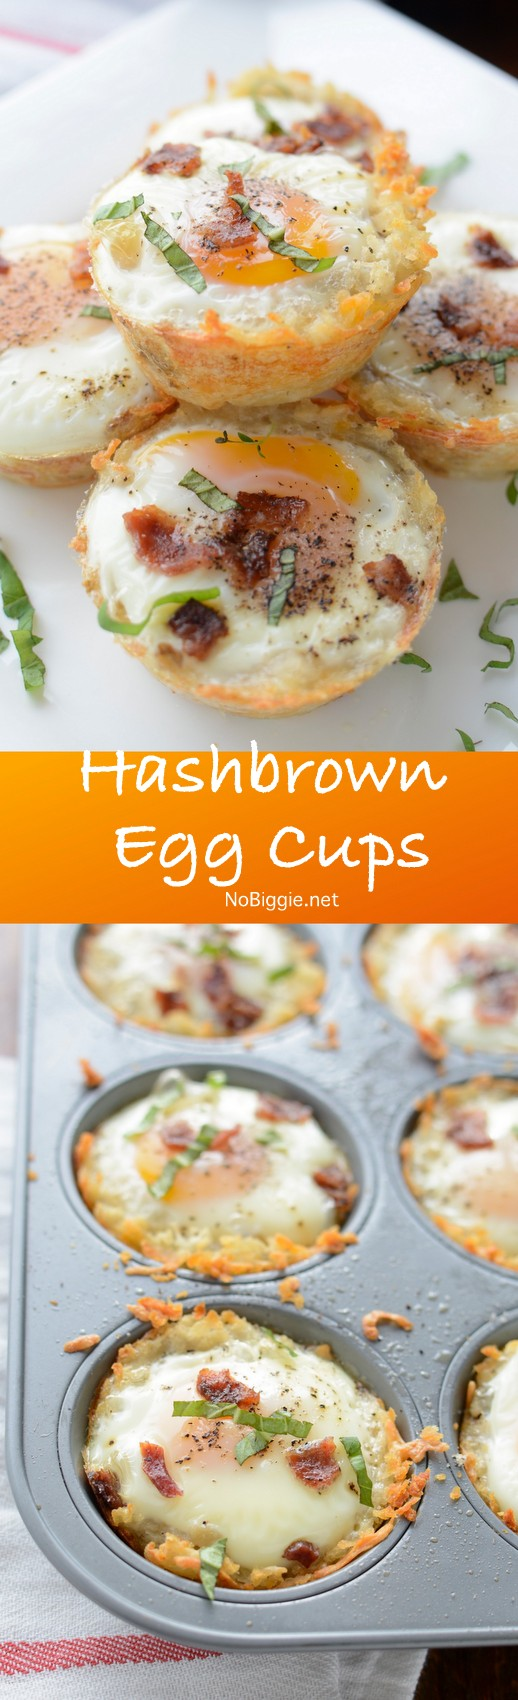 hash brown egg cups | NoBiggie.net